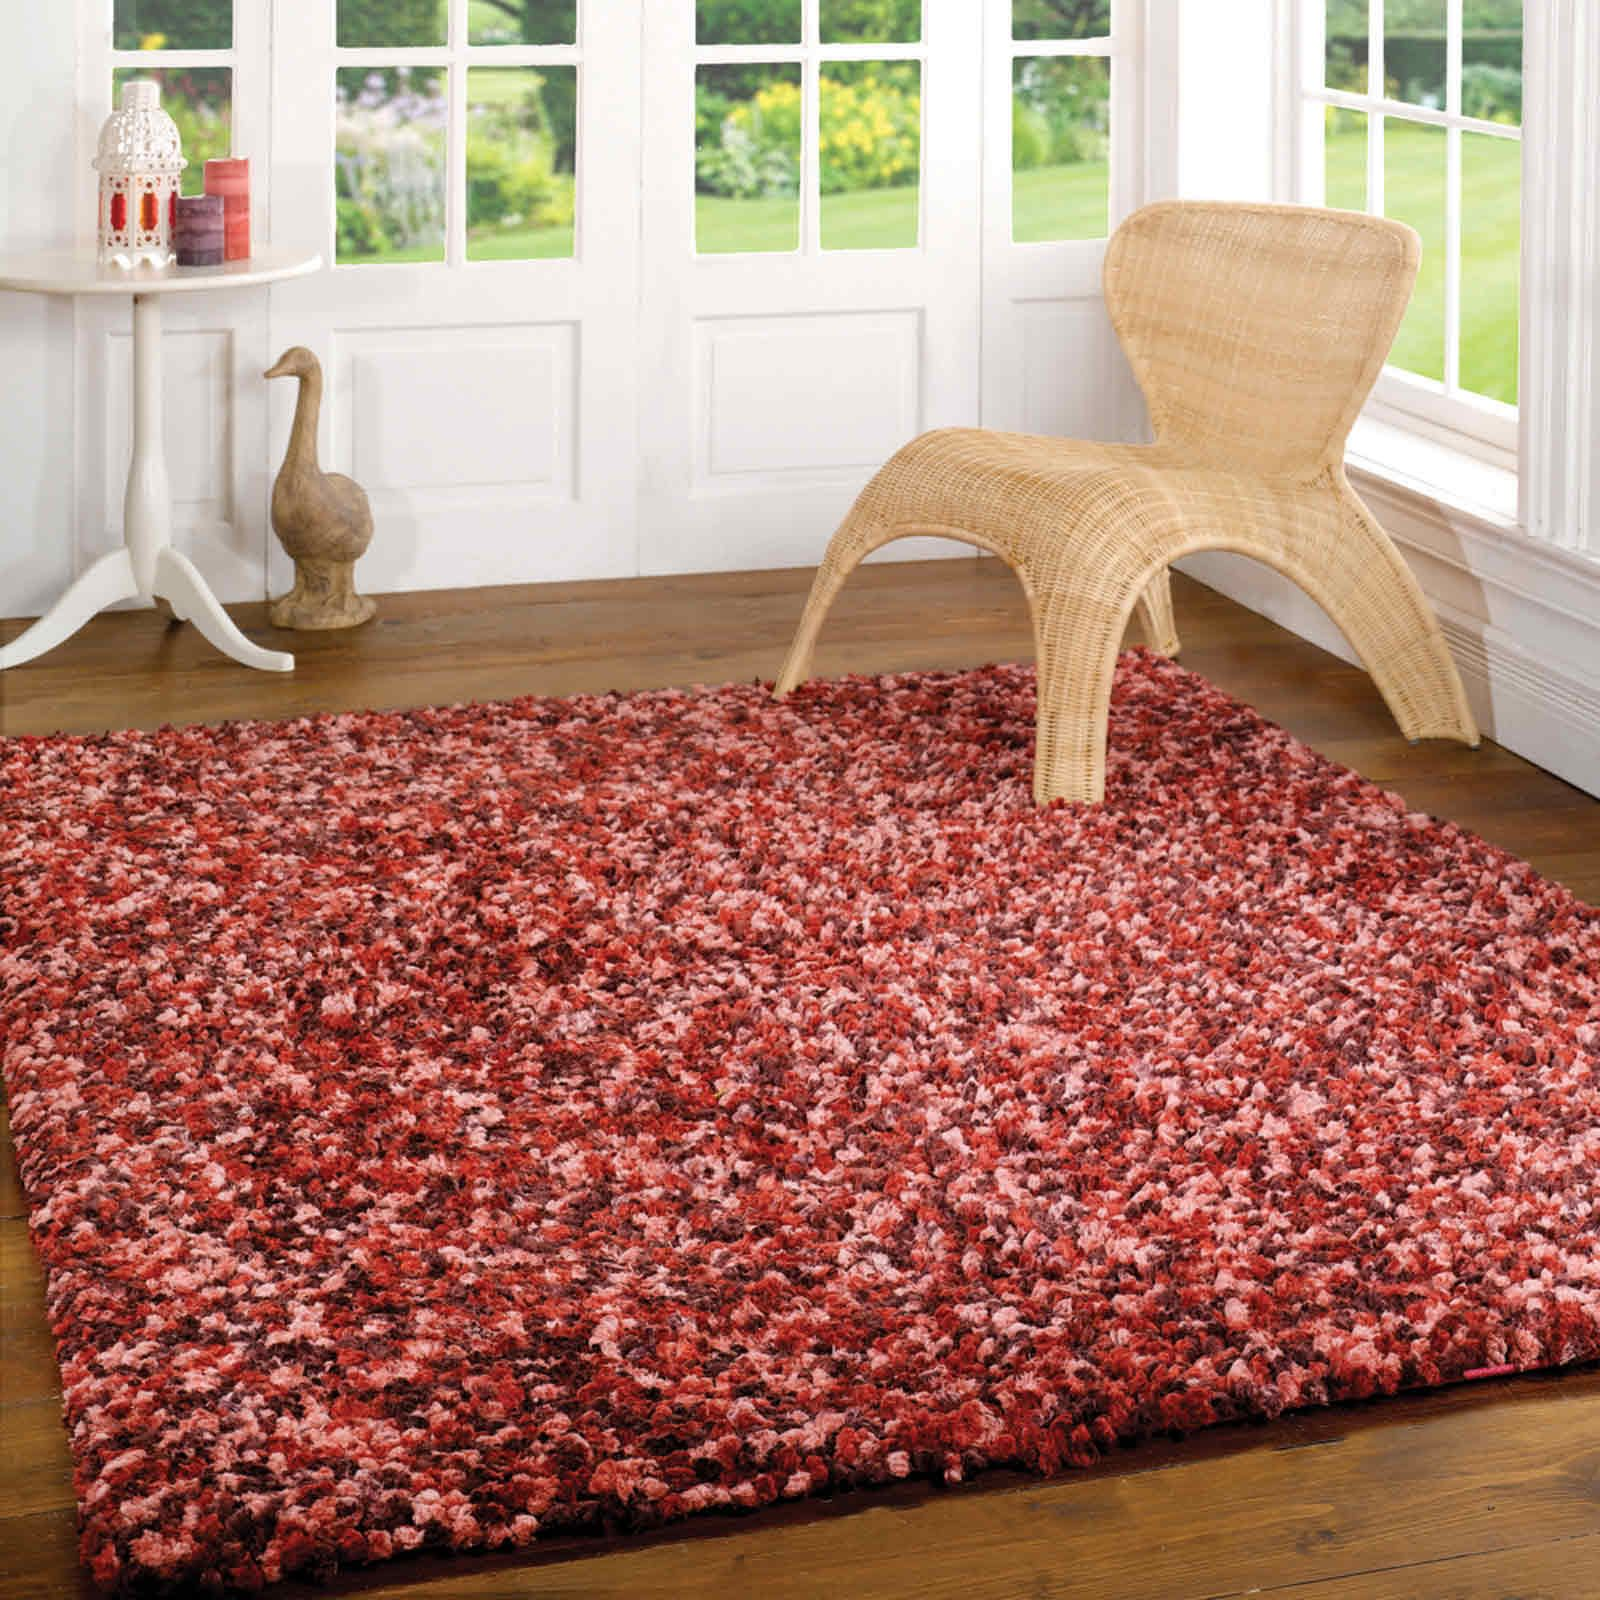 Fondant Truffle Rugs Are Handmade With A 100 Polyester Pile